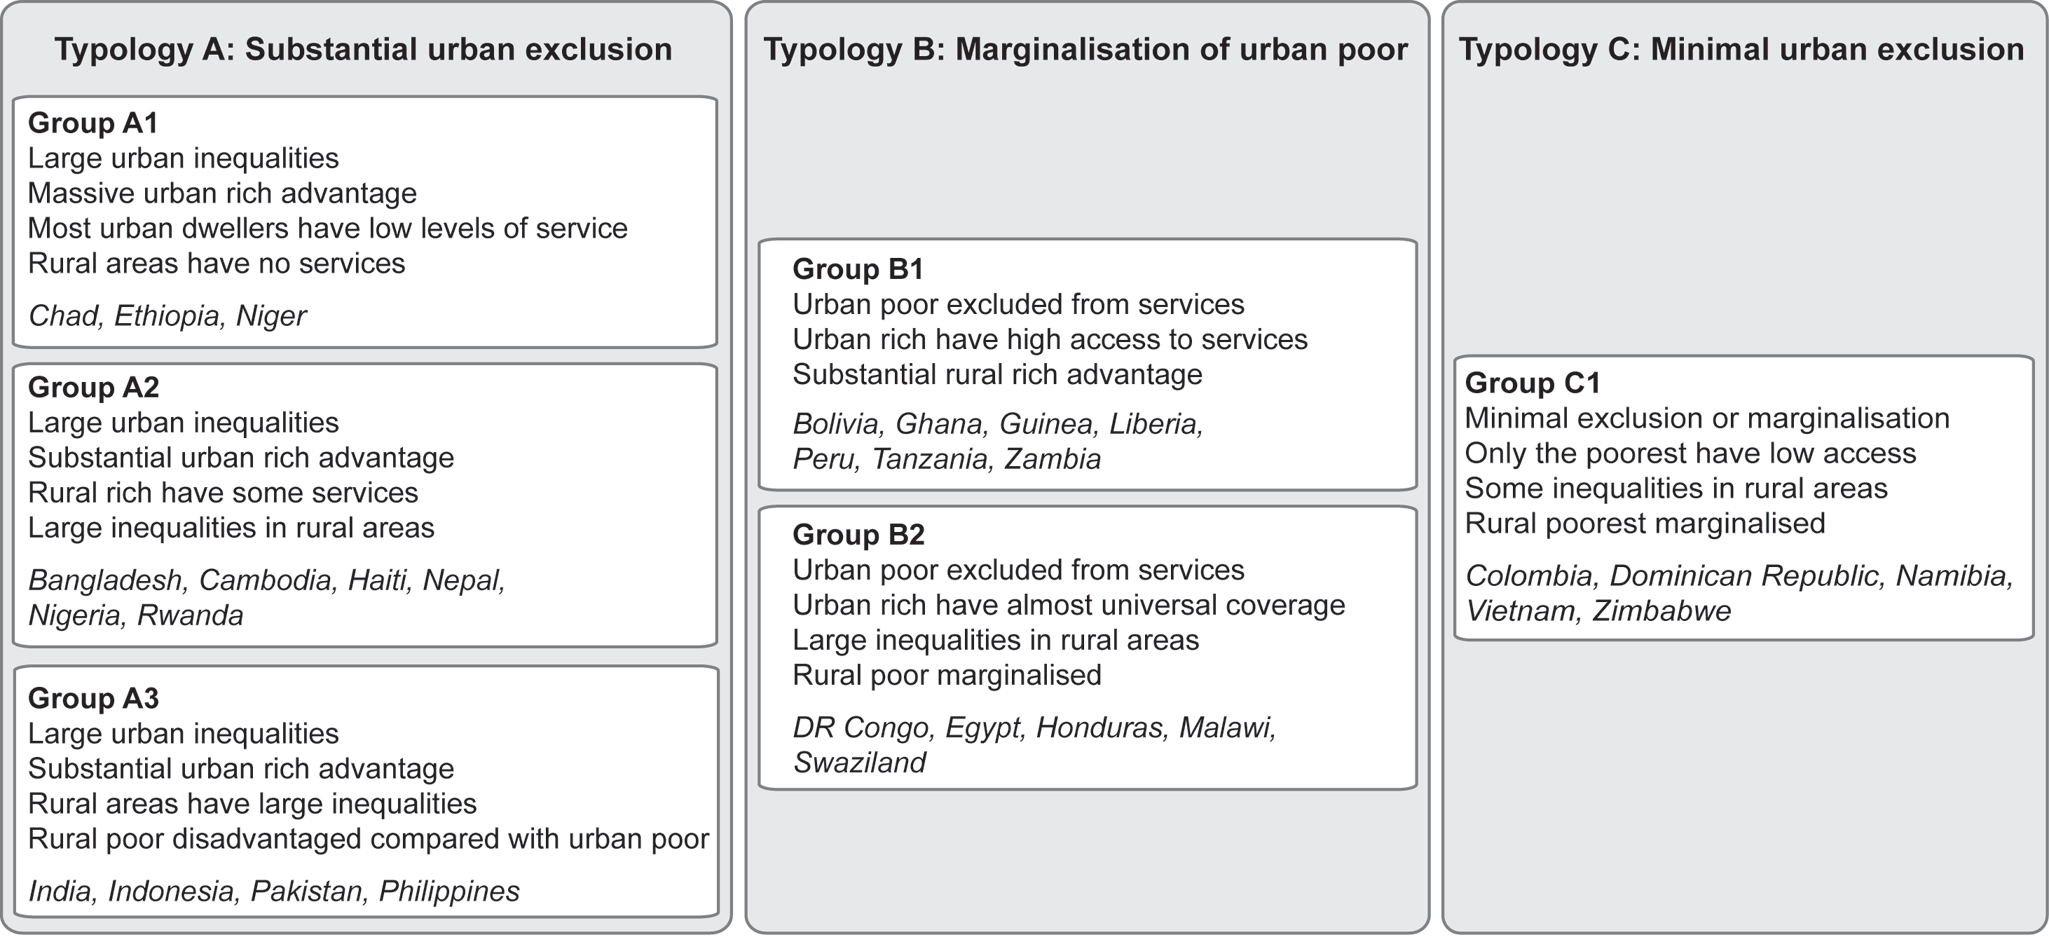 Typologies for urban coverage of maternal-newborn services.